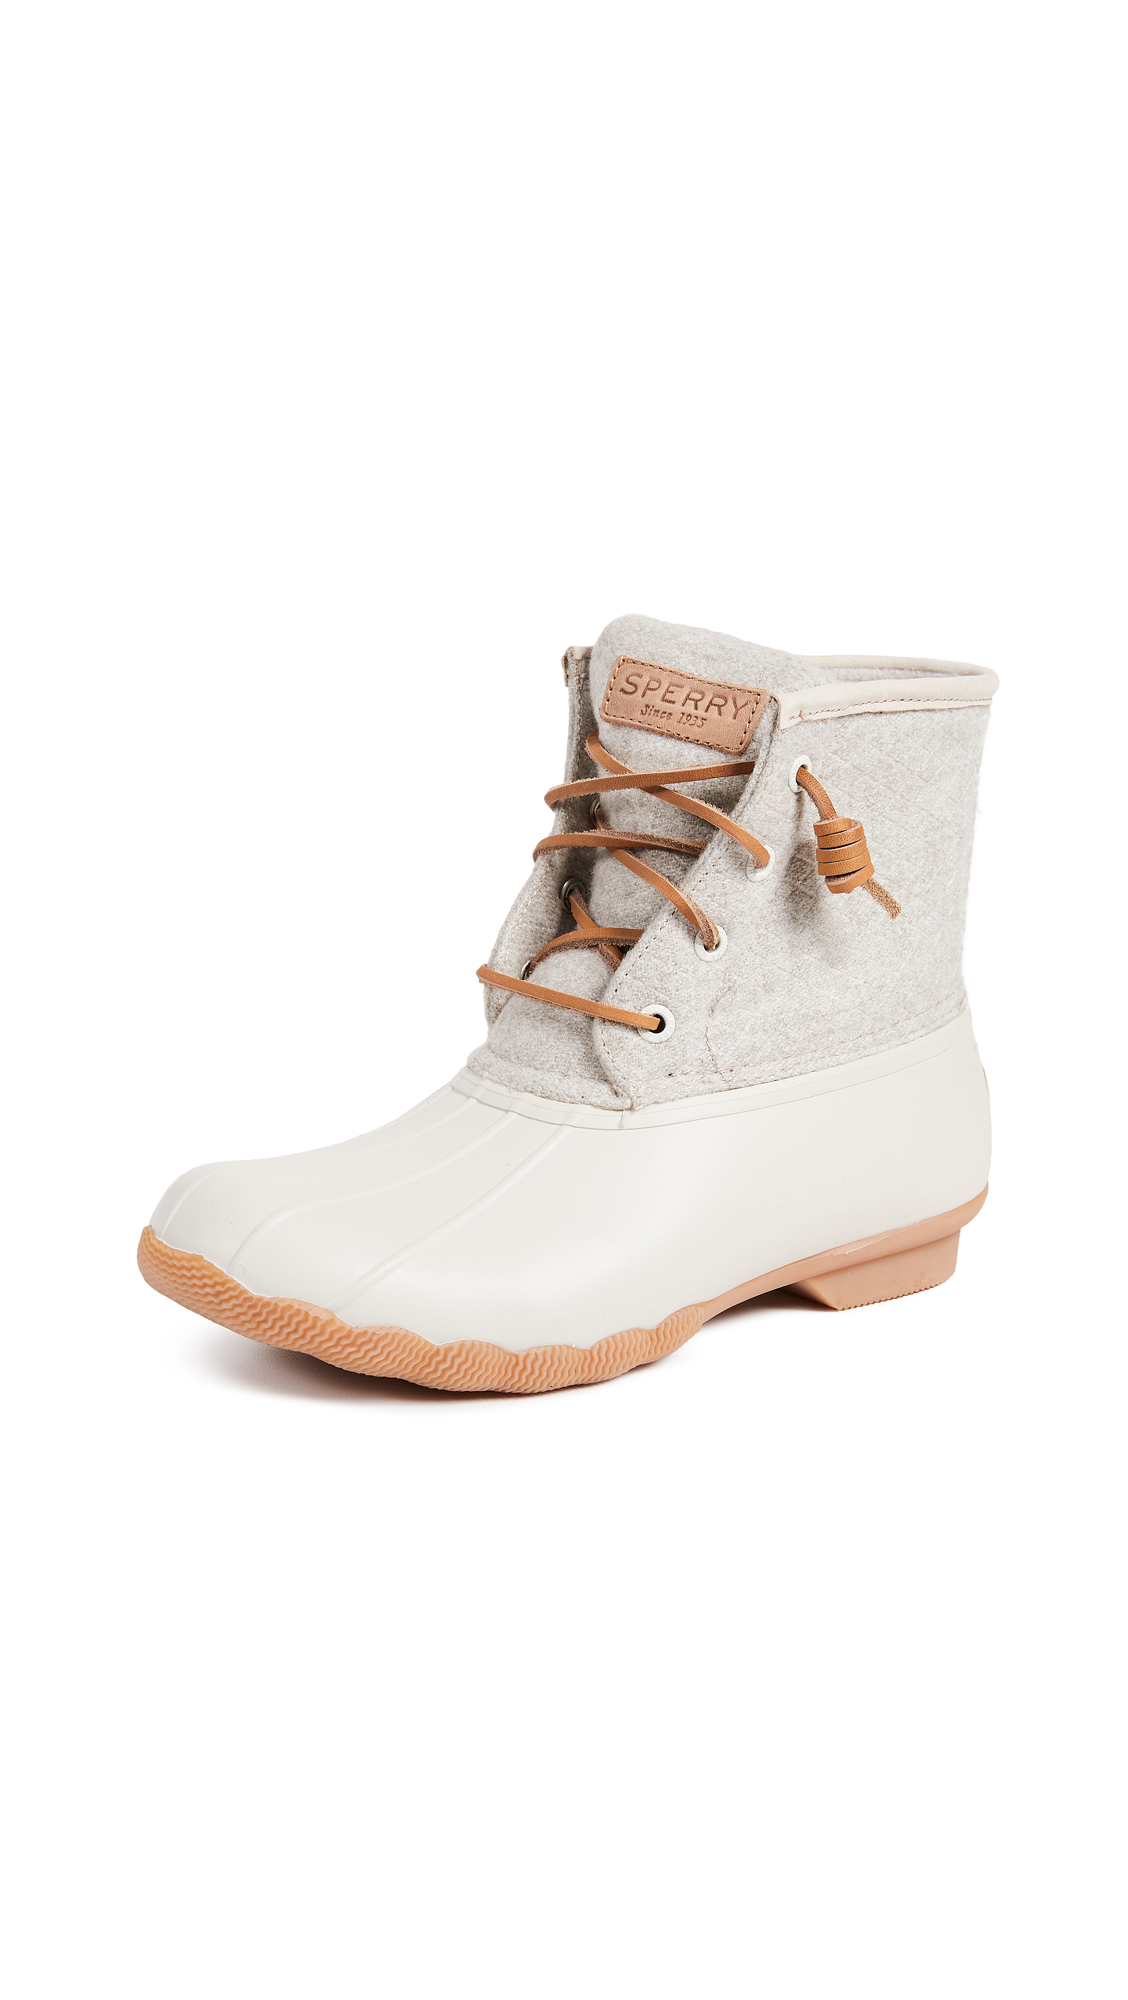 Sperry Saltwater Embos Wool Boots - Off White